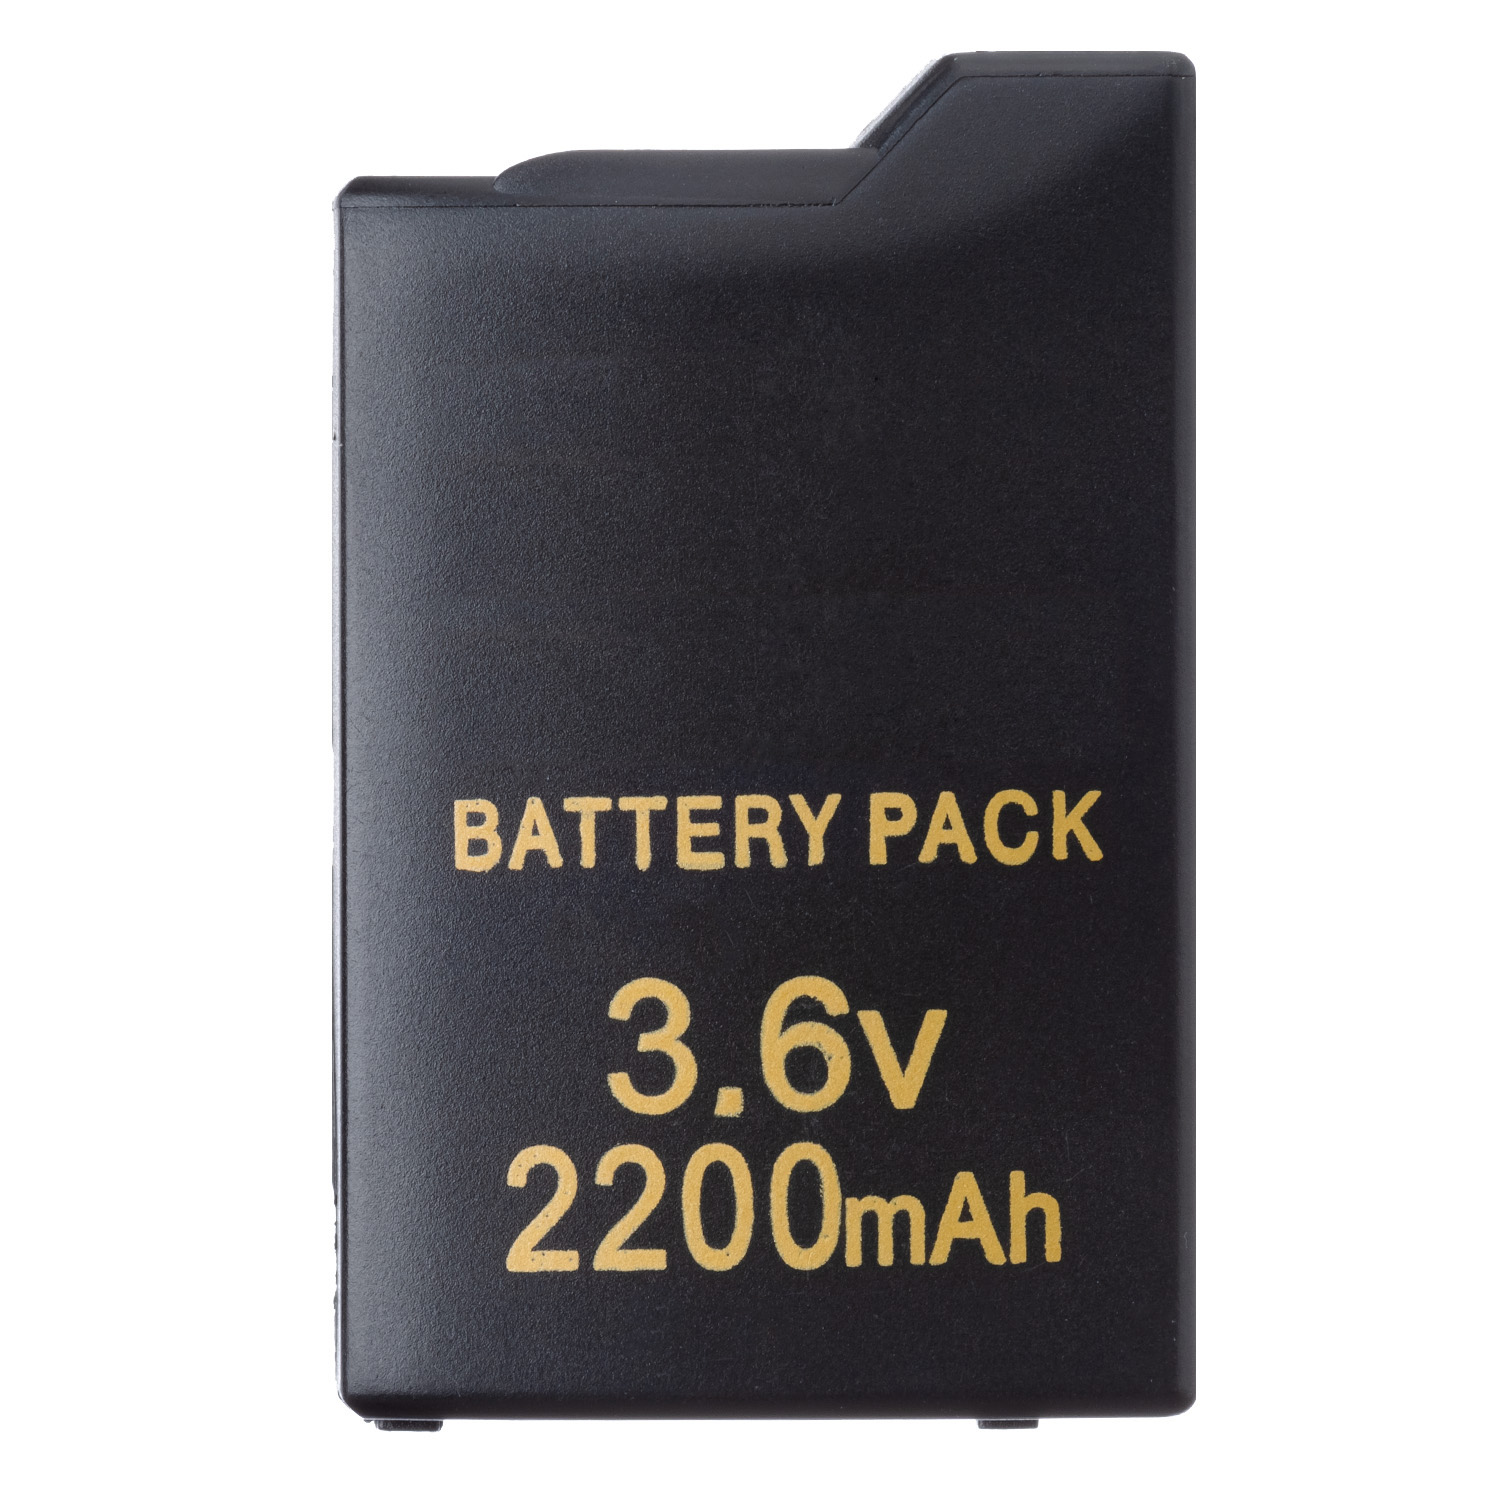 OSTENT 2200mAh 3.6V Rechargeable Battery Pack Replacement For Sony PSP 1000 Console